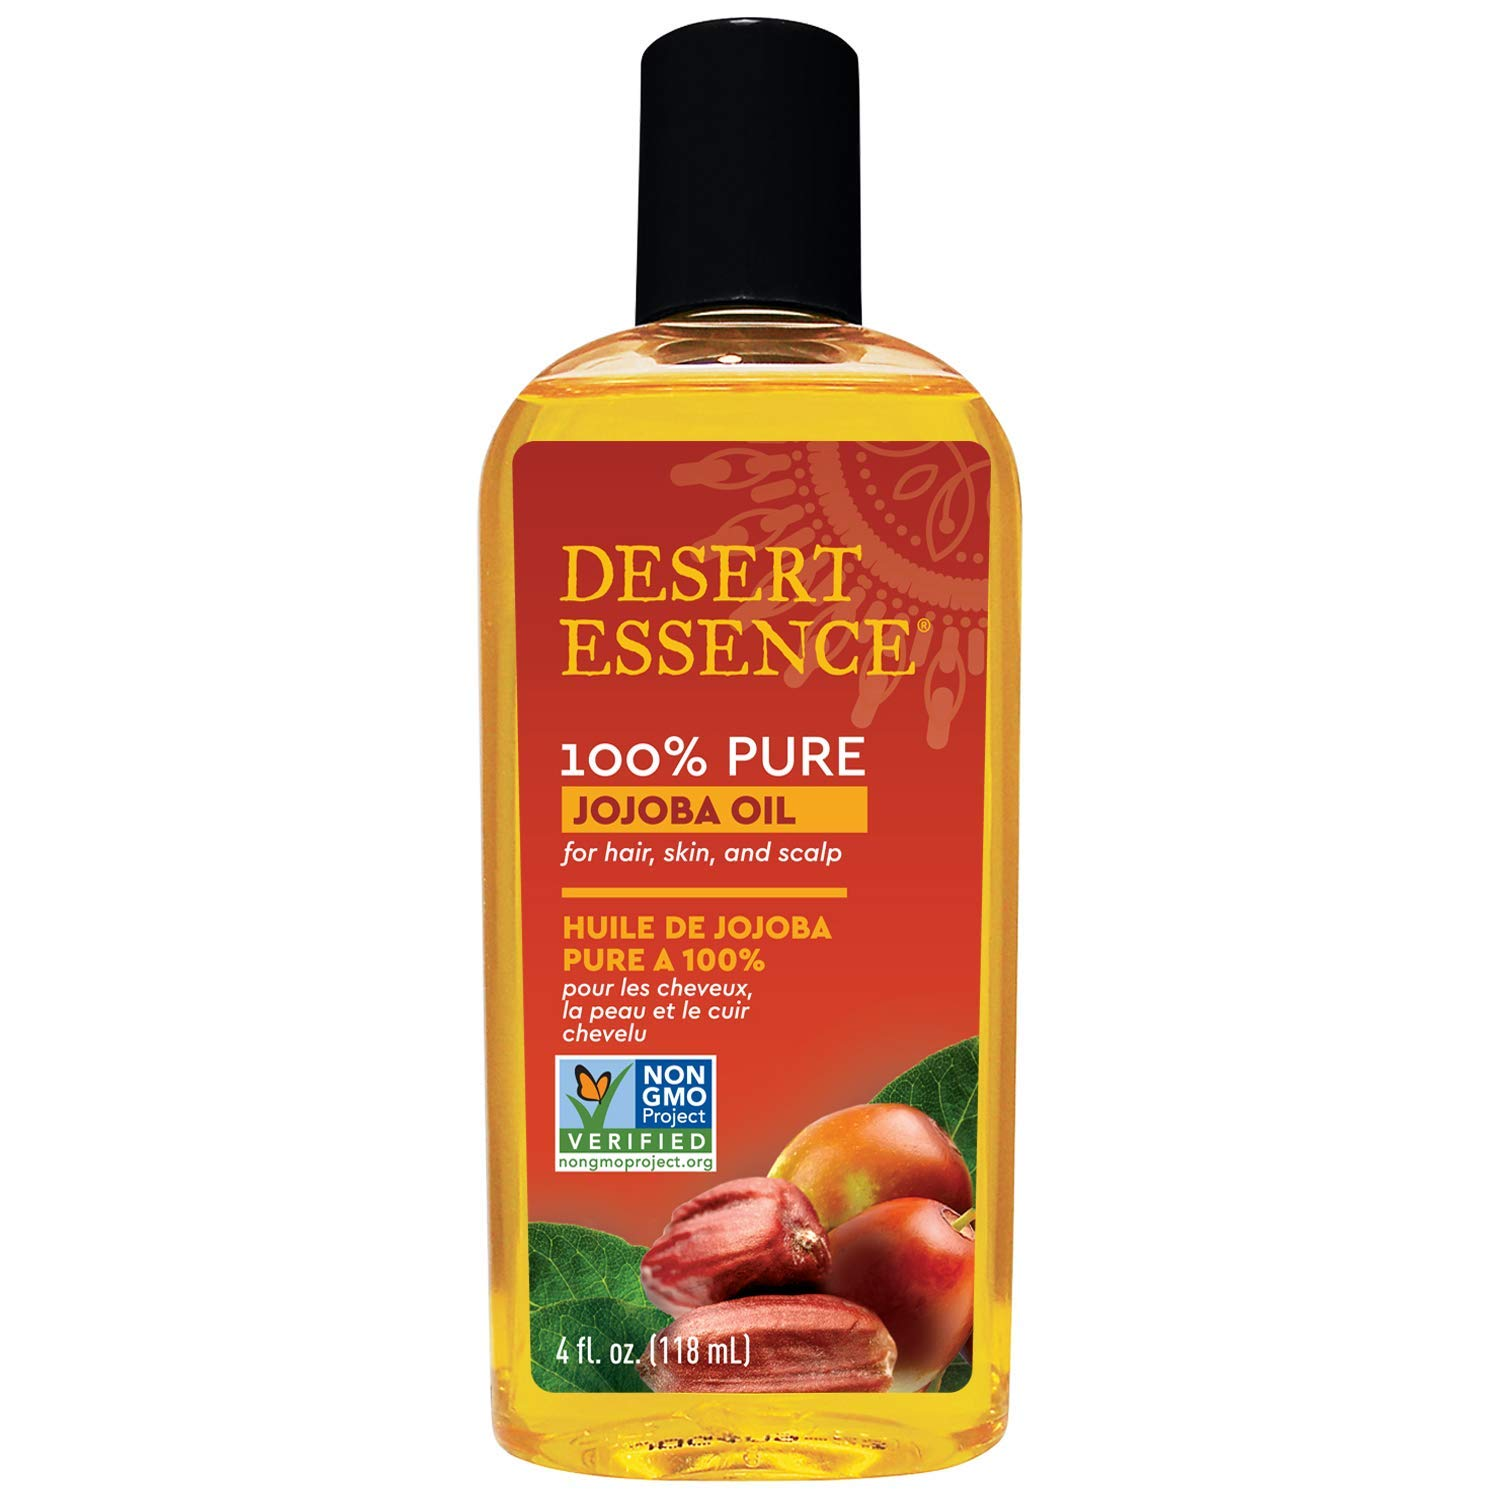 3. Desert Essence 100% Pure Jojoba Oil